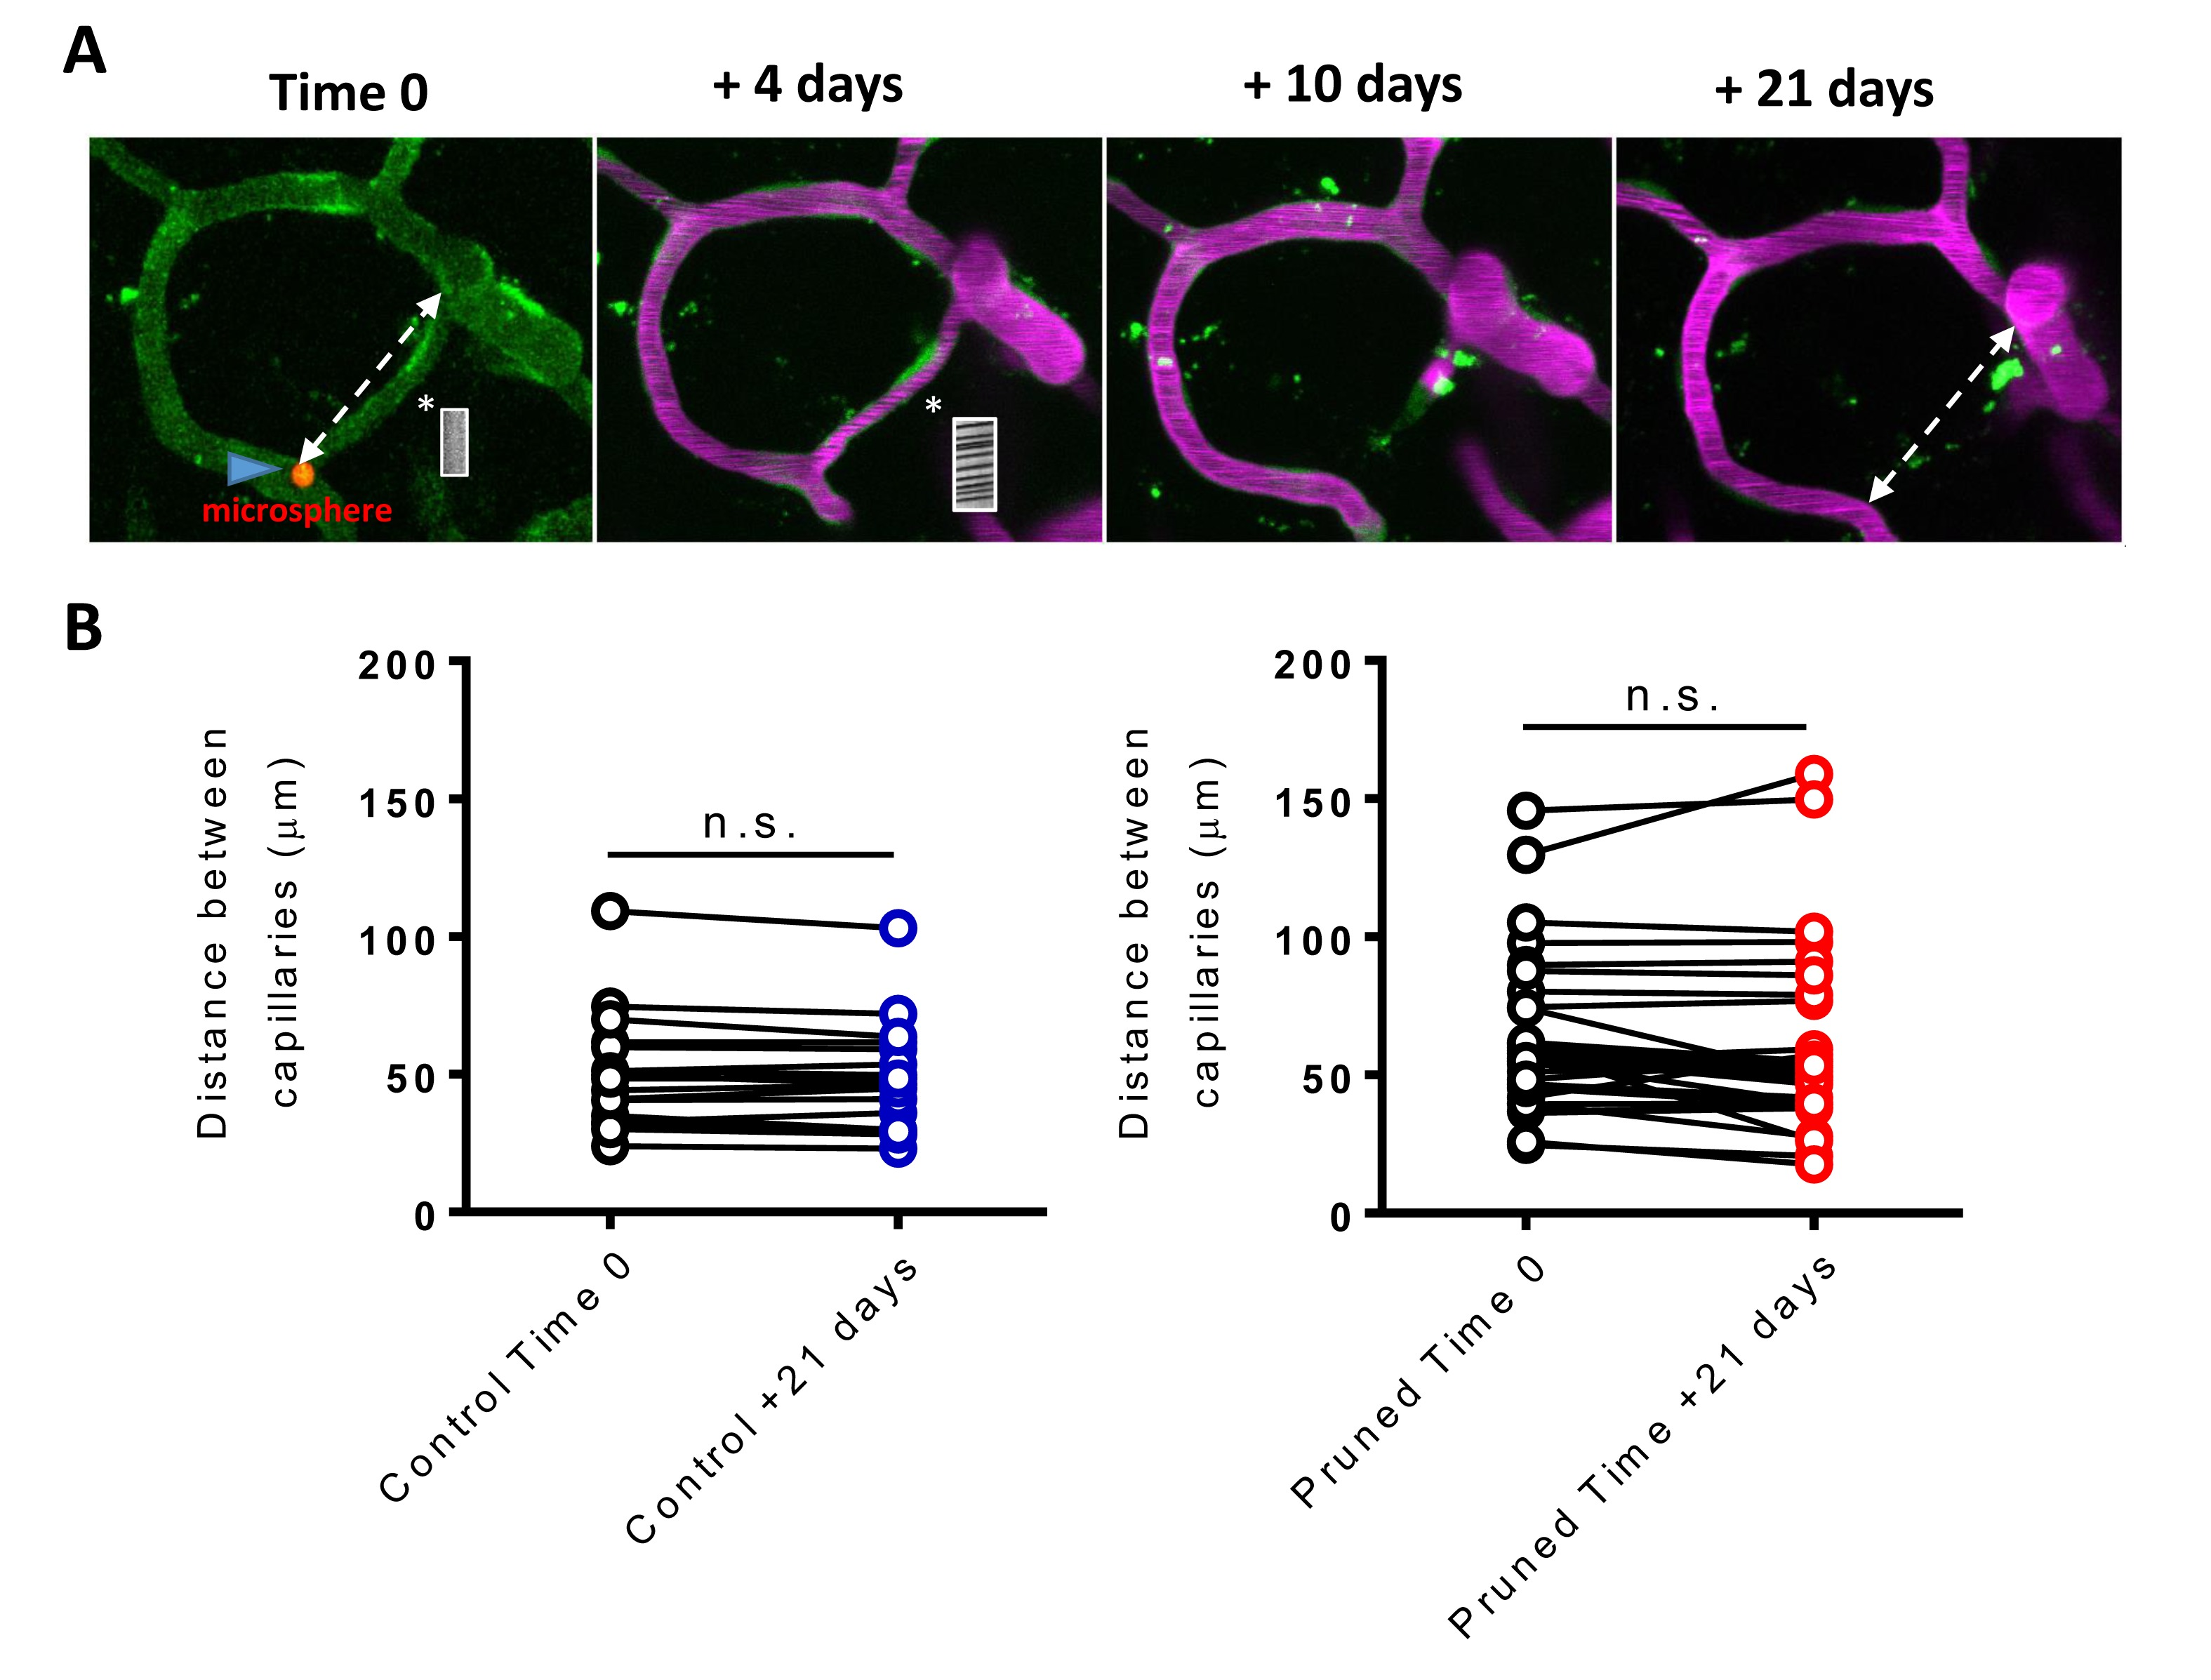 VEGF signaling regulates the fate of obstructed capillaries in mouse